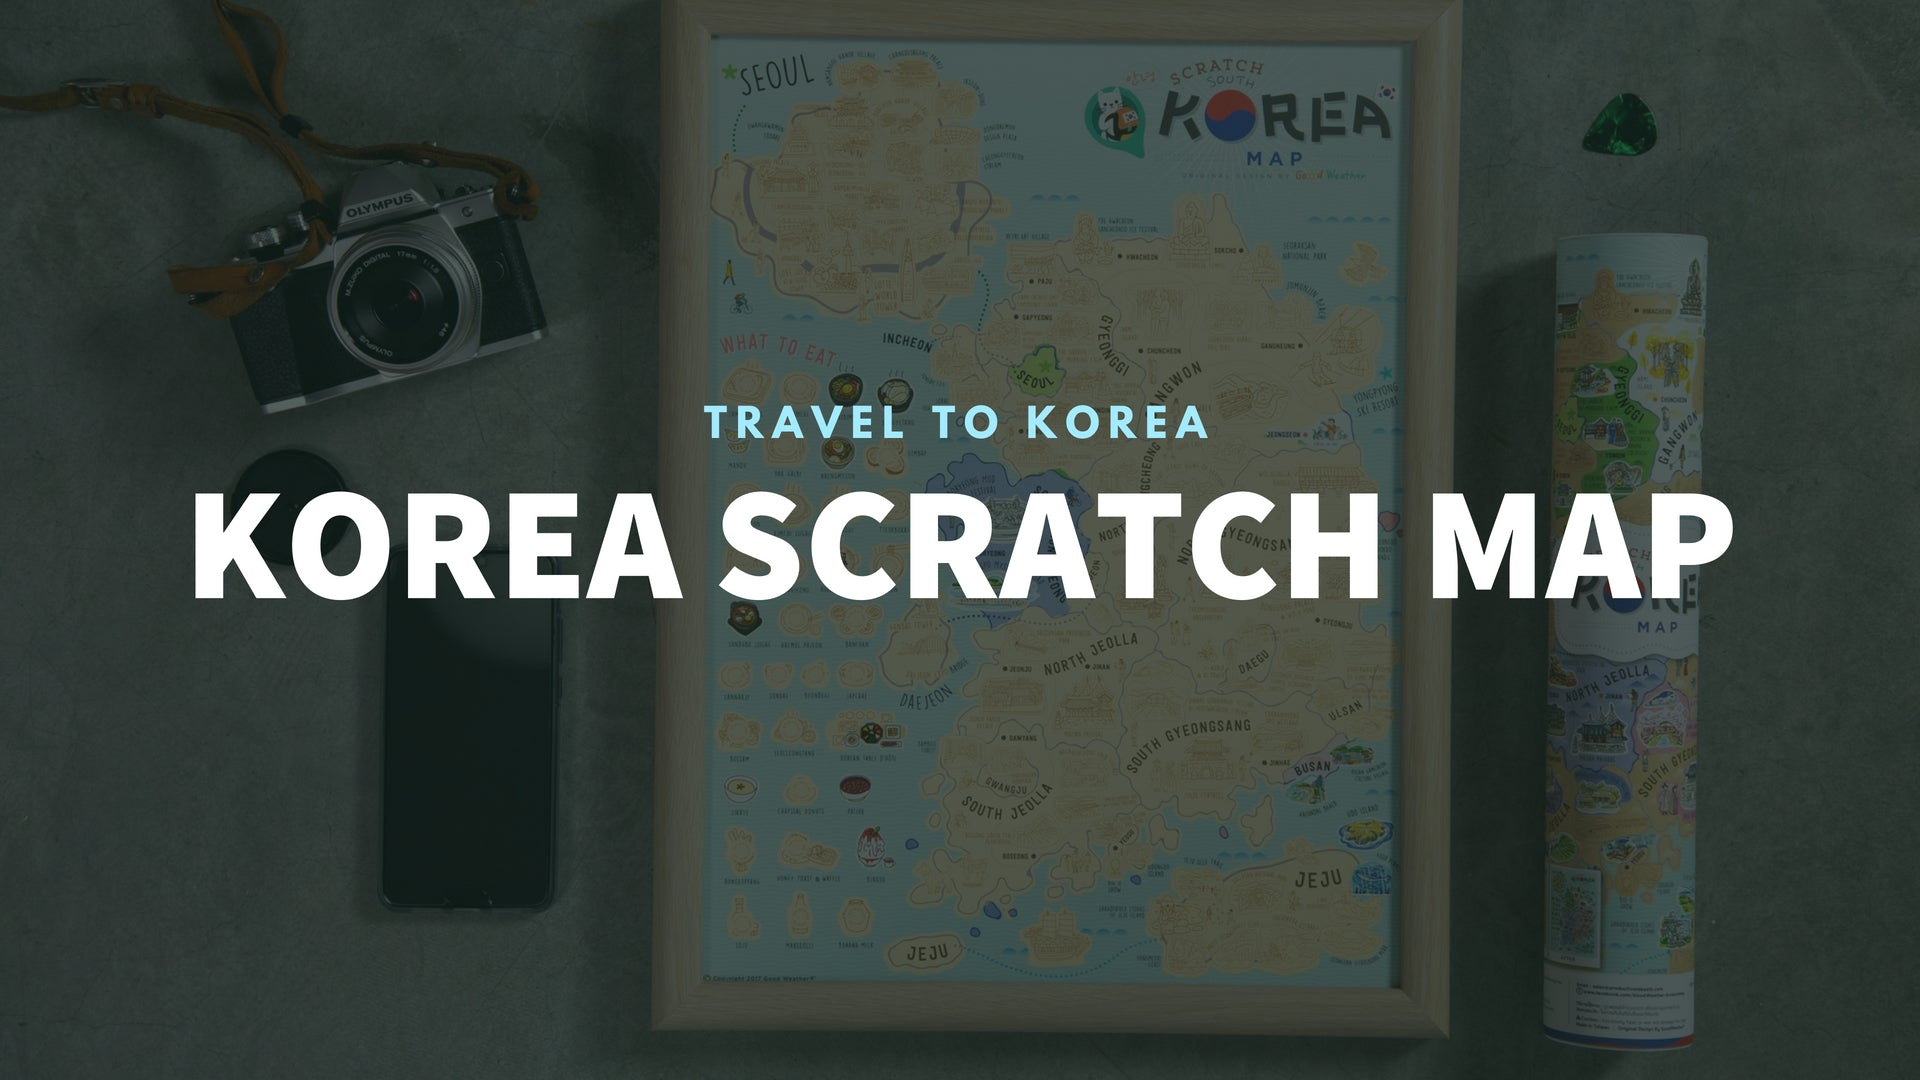 korea scratch map - iMartCity 刮刮樂 travel to korea travel map